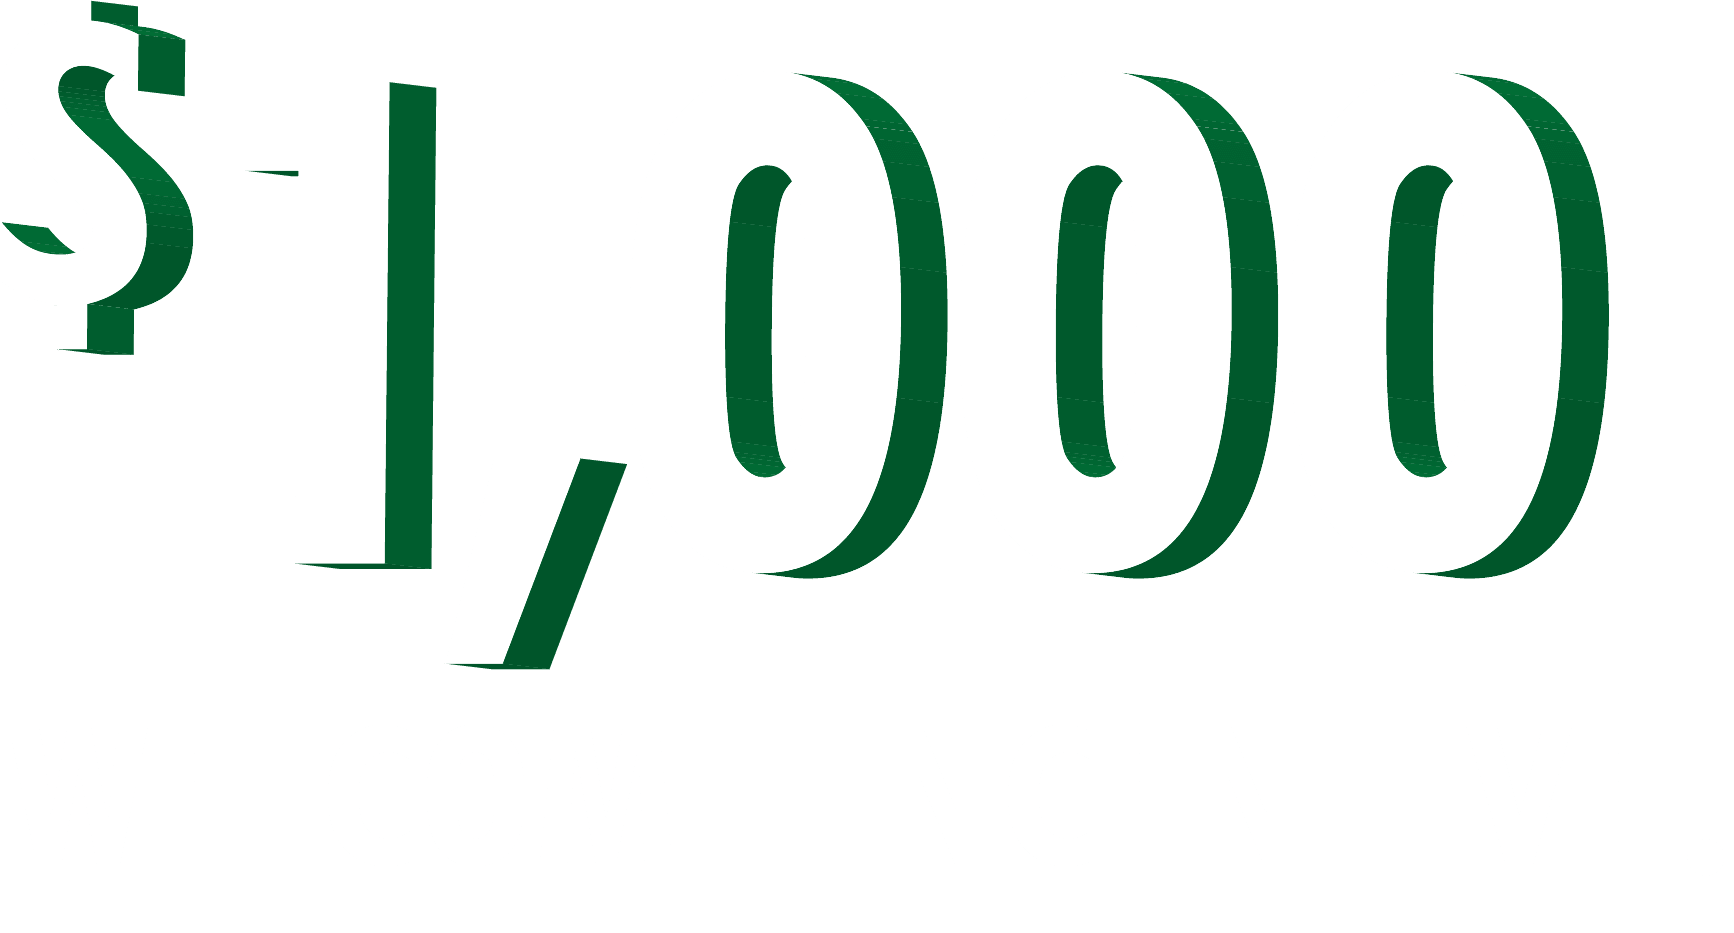 welcome incentive for one thousand dollars